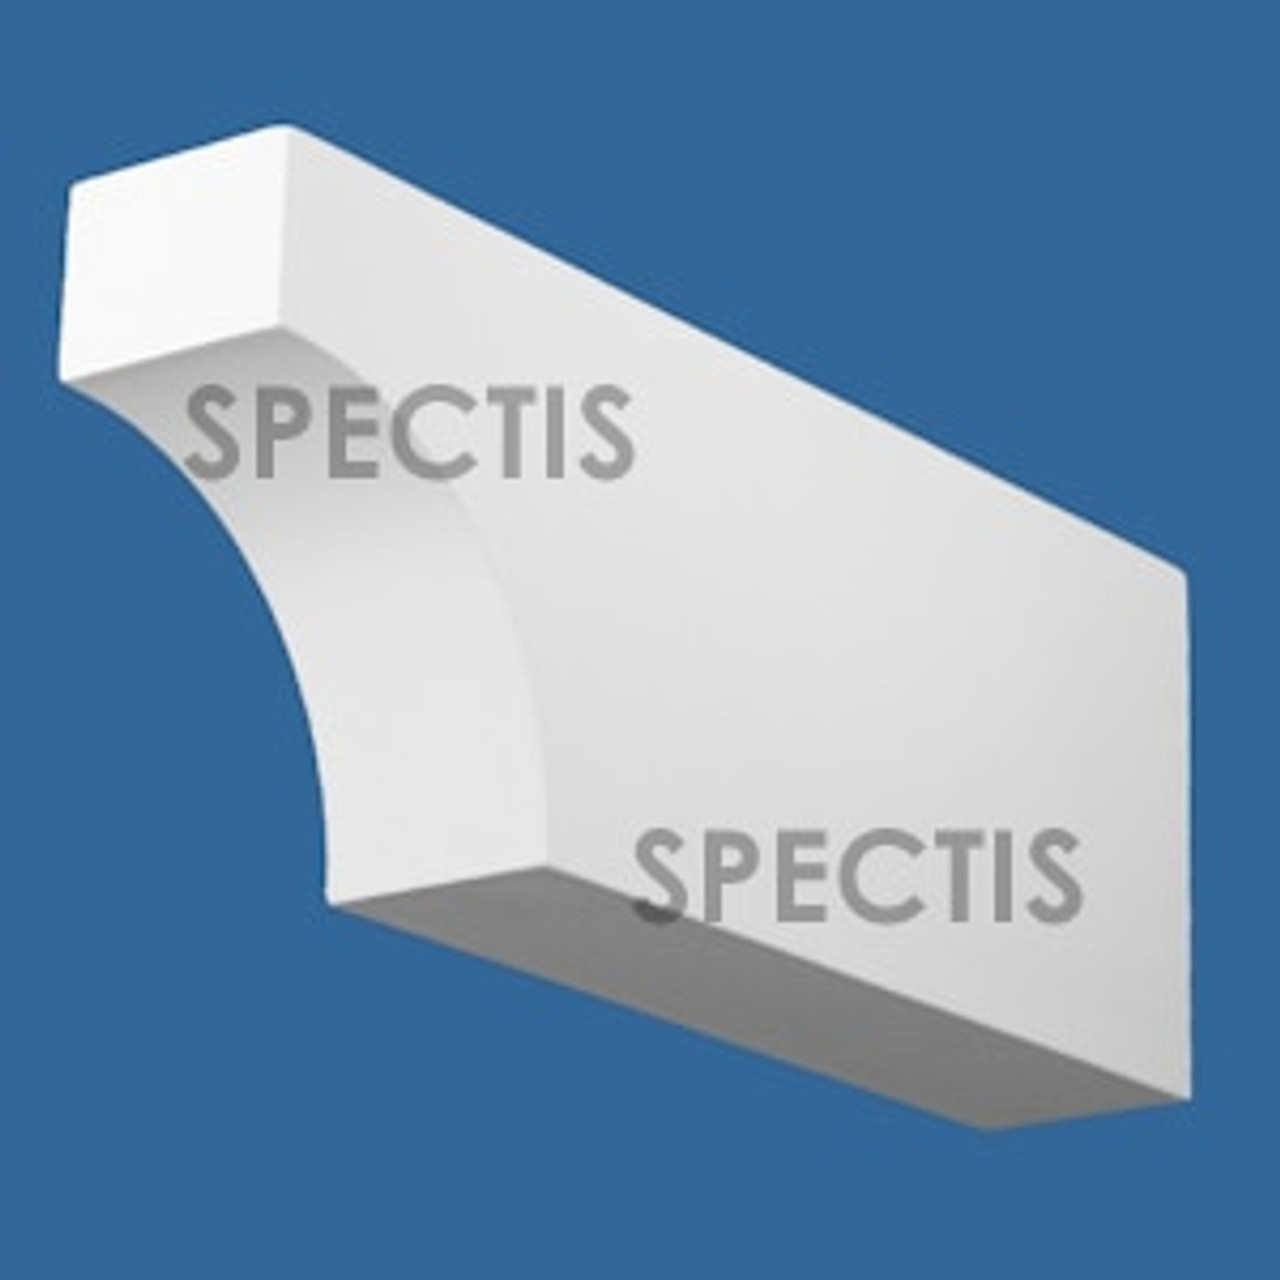 "BL2992 Spectis Eave Block or Bracket 3.25""W x 7.25""H x 18"" Projection"